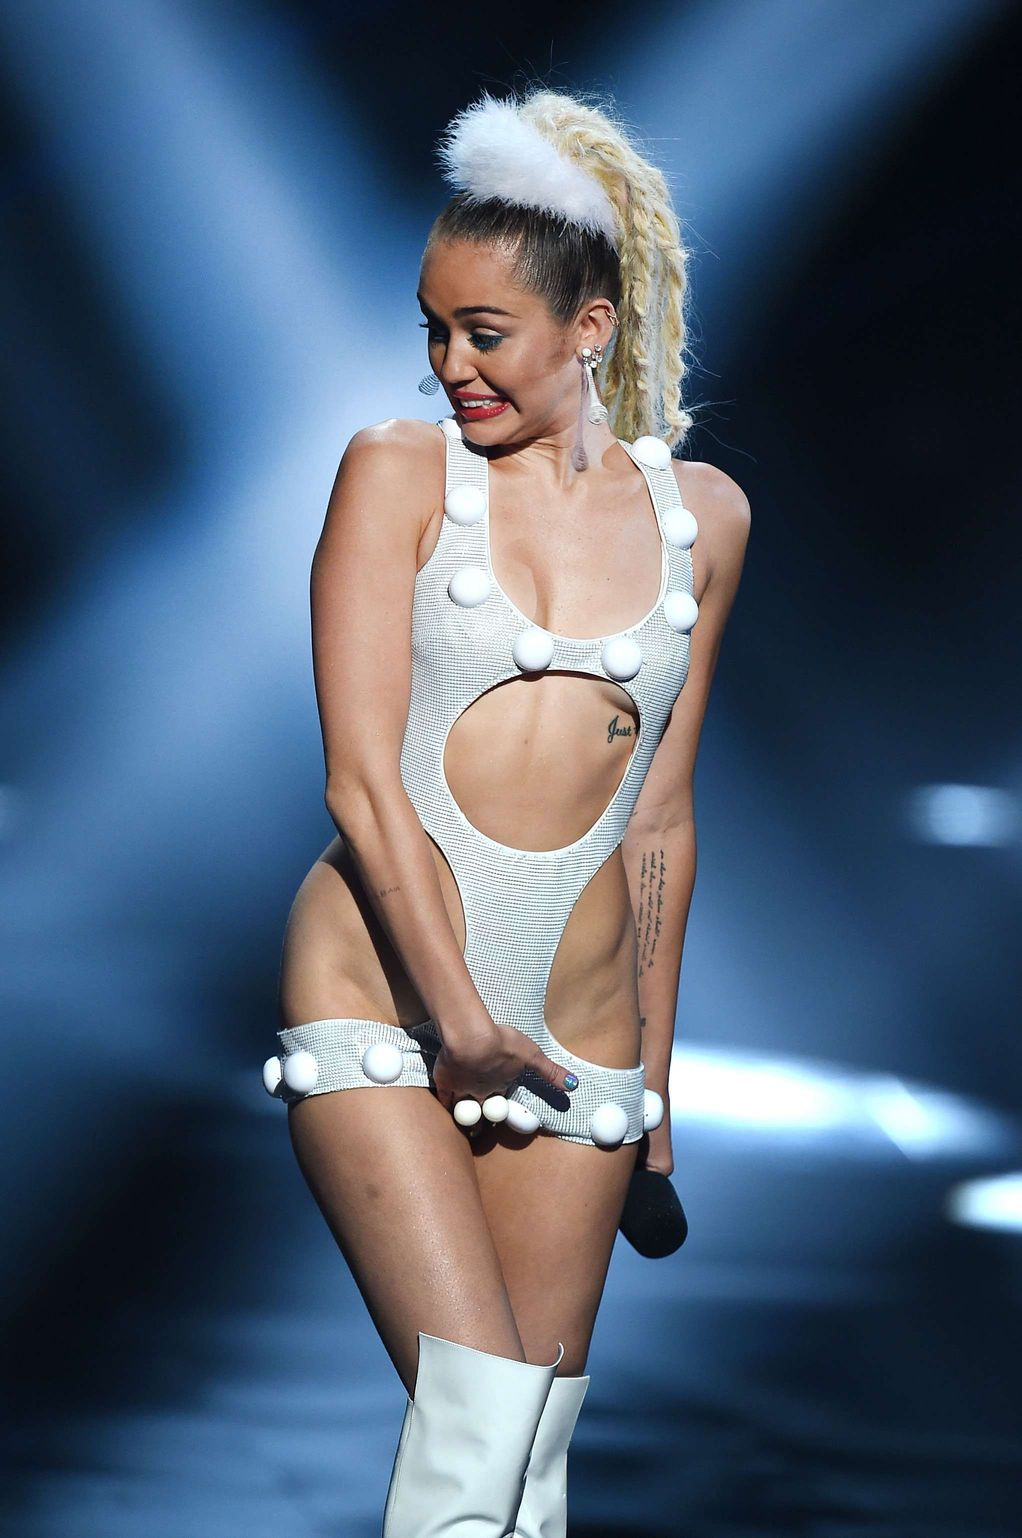 miley cyrus image galleries sexy